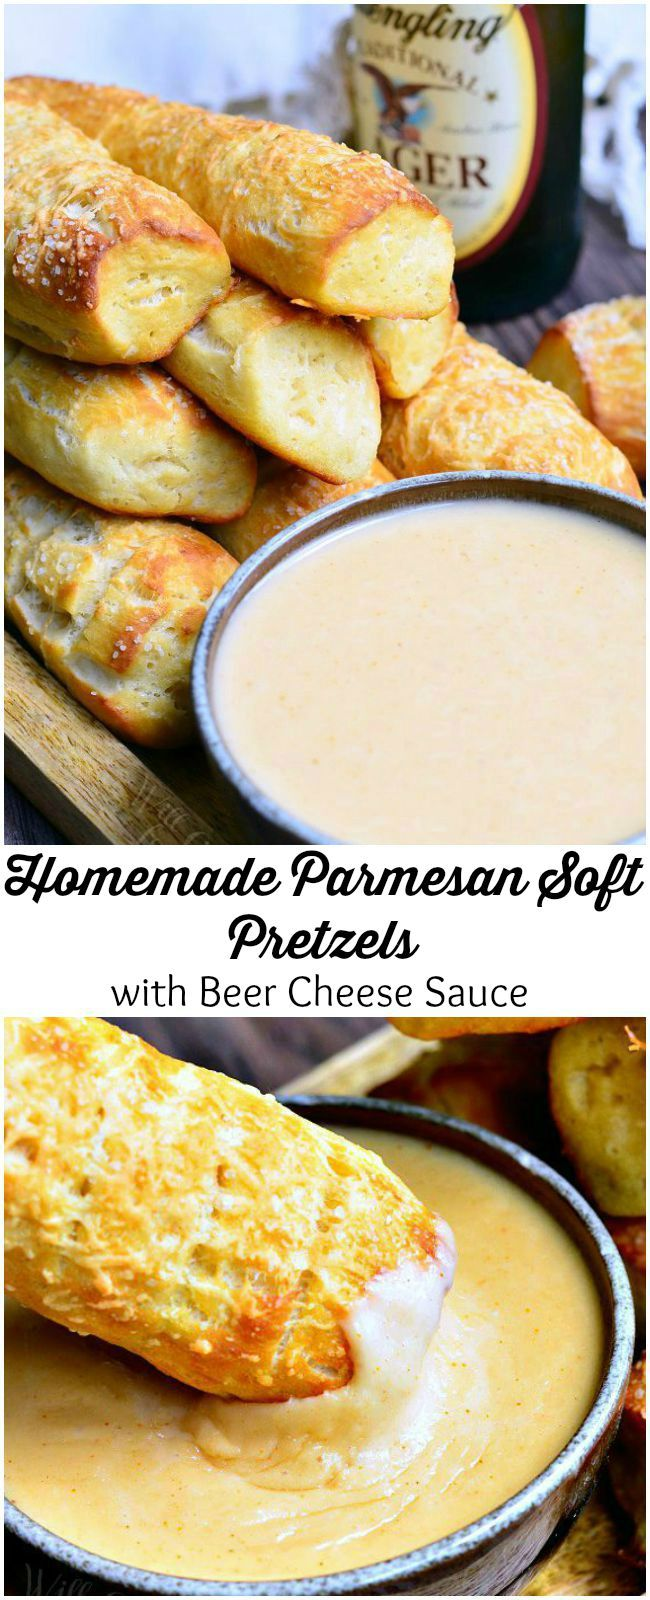 Homemade Parmesan Soft Pretzel Sticks with Beer Cheese Sauce | from willcookforsmiles.com #partyfood #appetizer #bread